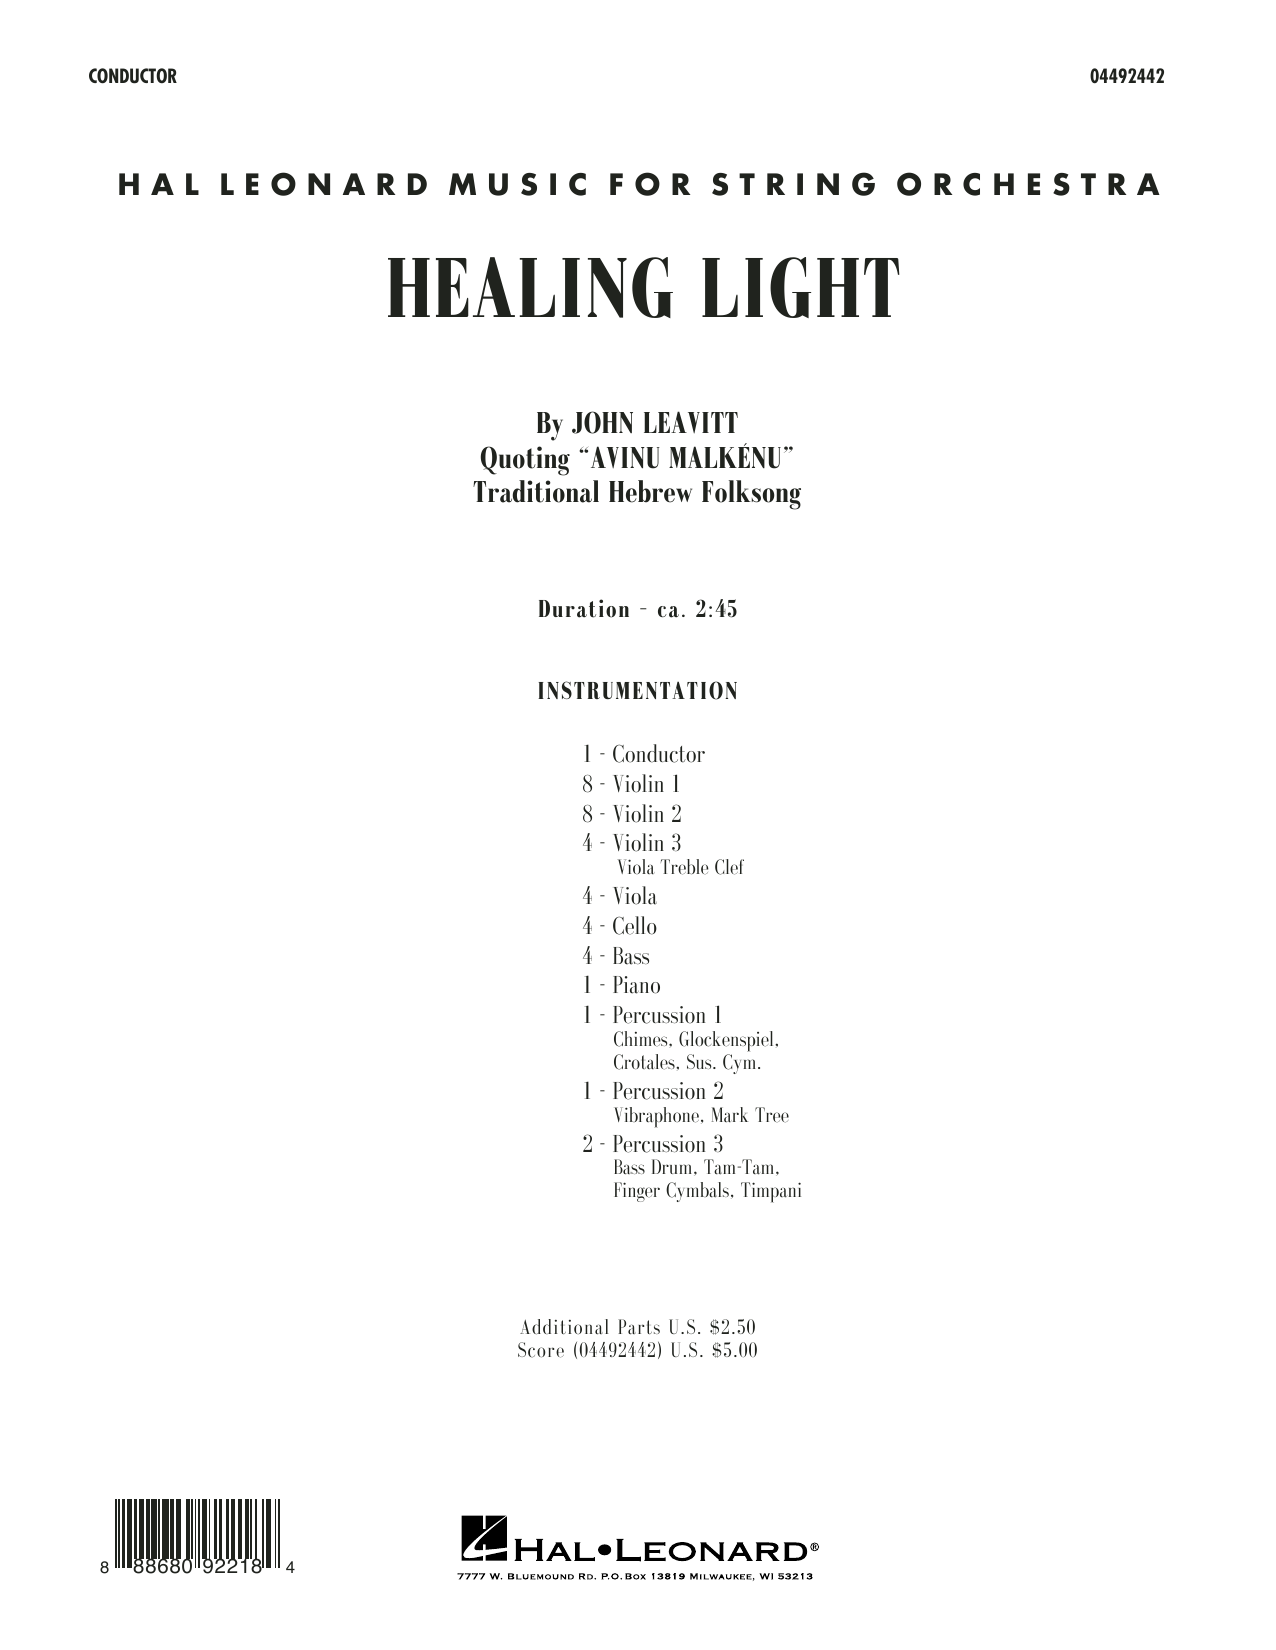 John Leavitt Healing Light - Conductor Score (Full Score) sheet music preview music notes and score for Orchestra including 6 page(s)